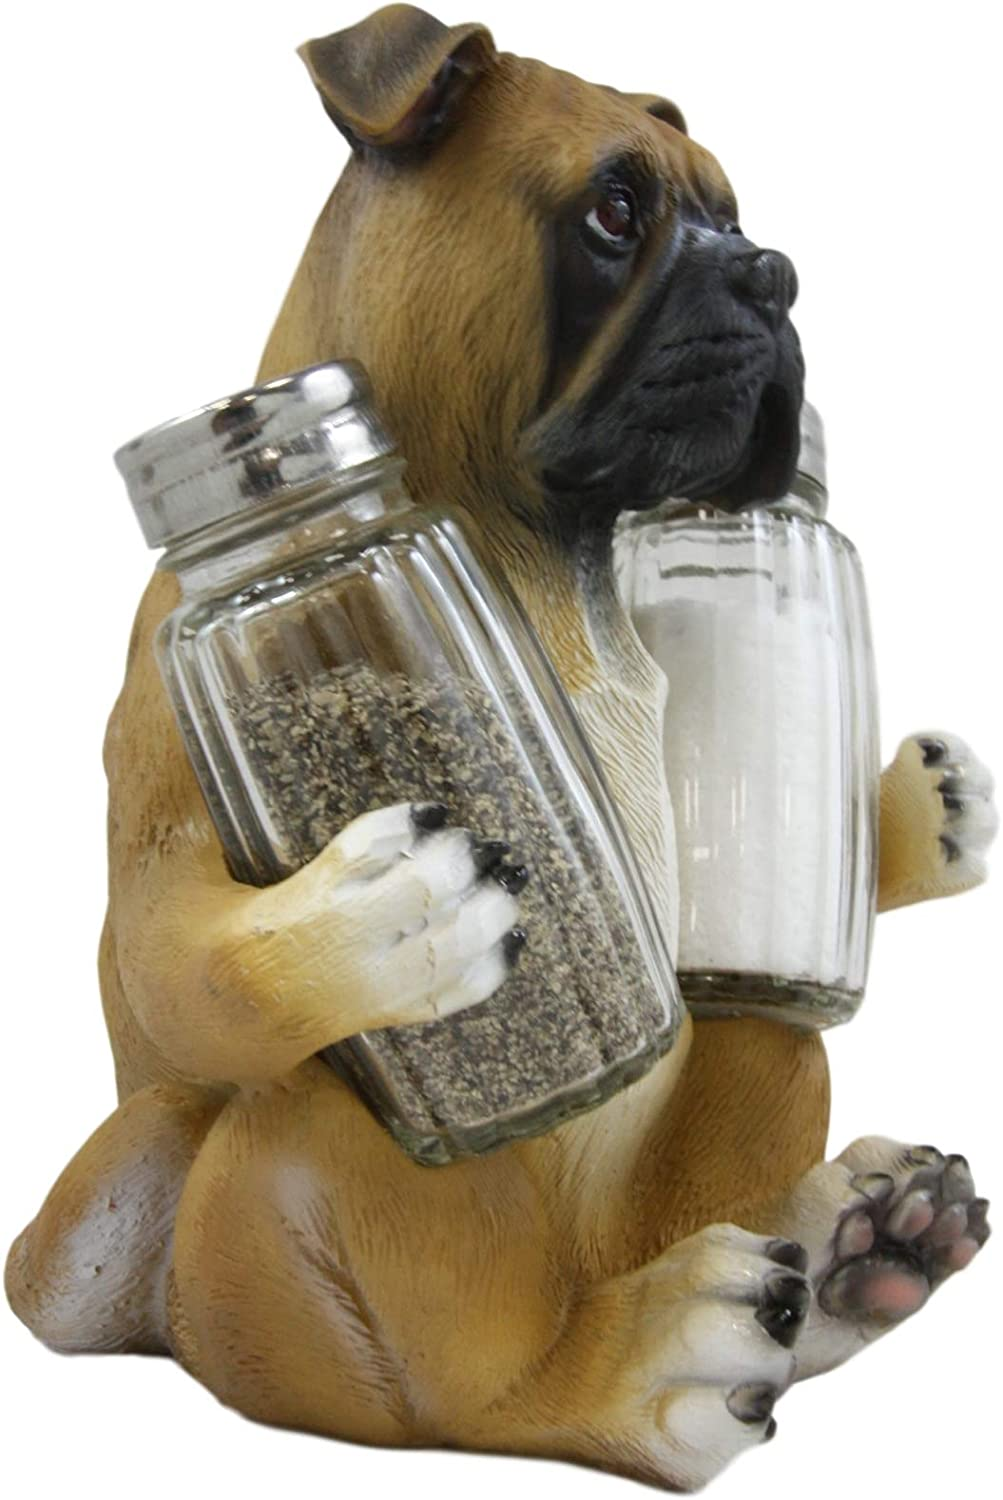 Ebros Gift Realistic Fawn Boxer Puppy Dog Hugging Glass Salt Pepper Shakers Holder Decorative Statue 6.25High Resin Dogs Boxers Memorial Pets Pet Pal Animal Home Kitchen Spice Organizer Figurine